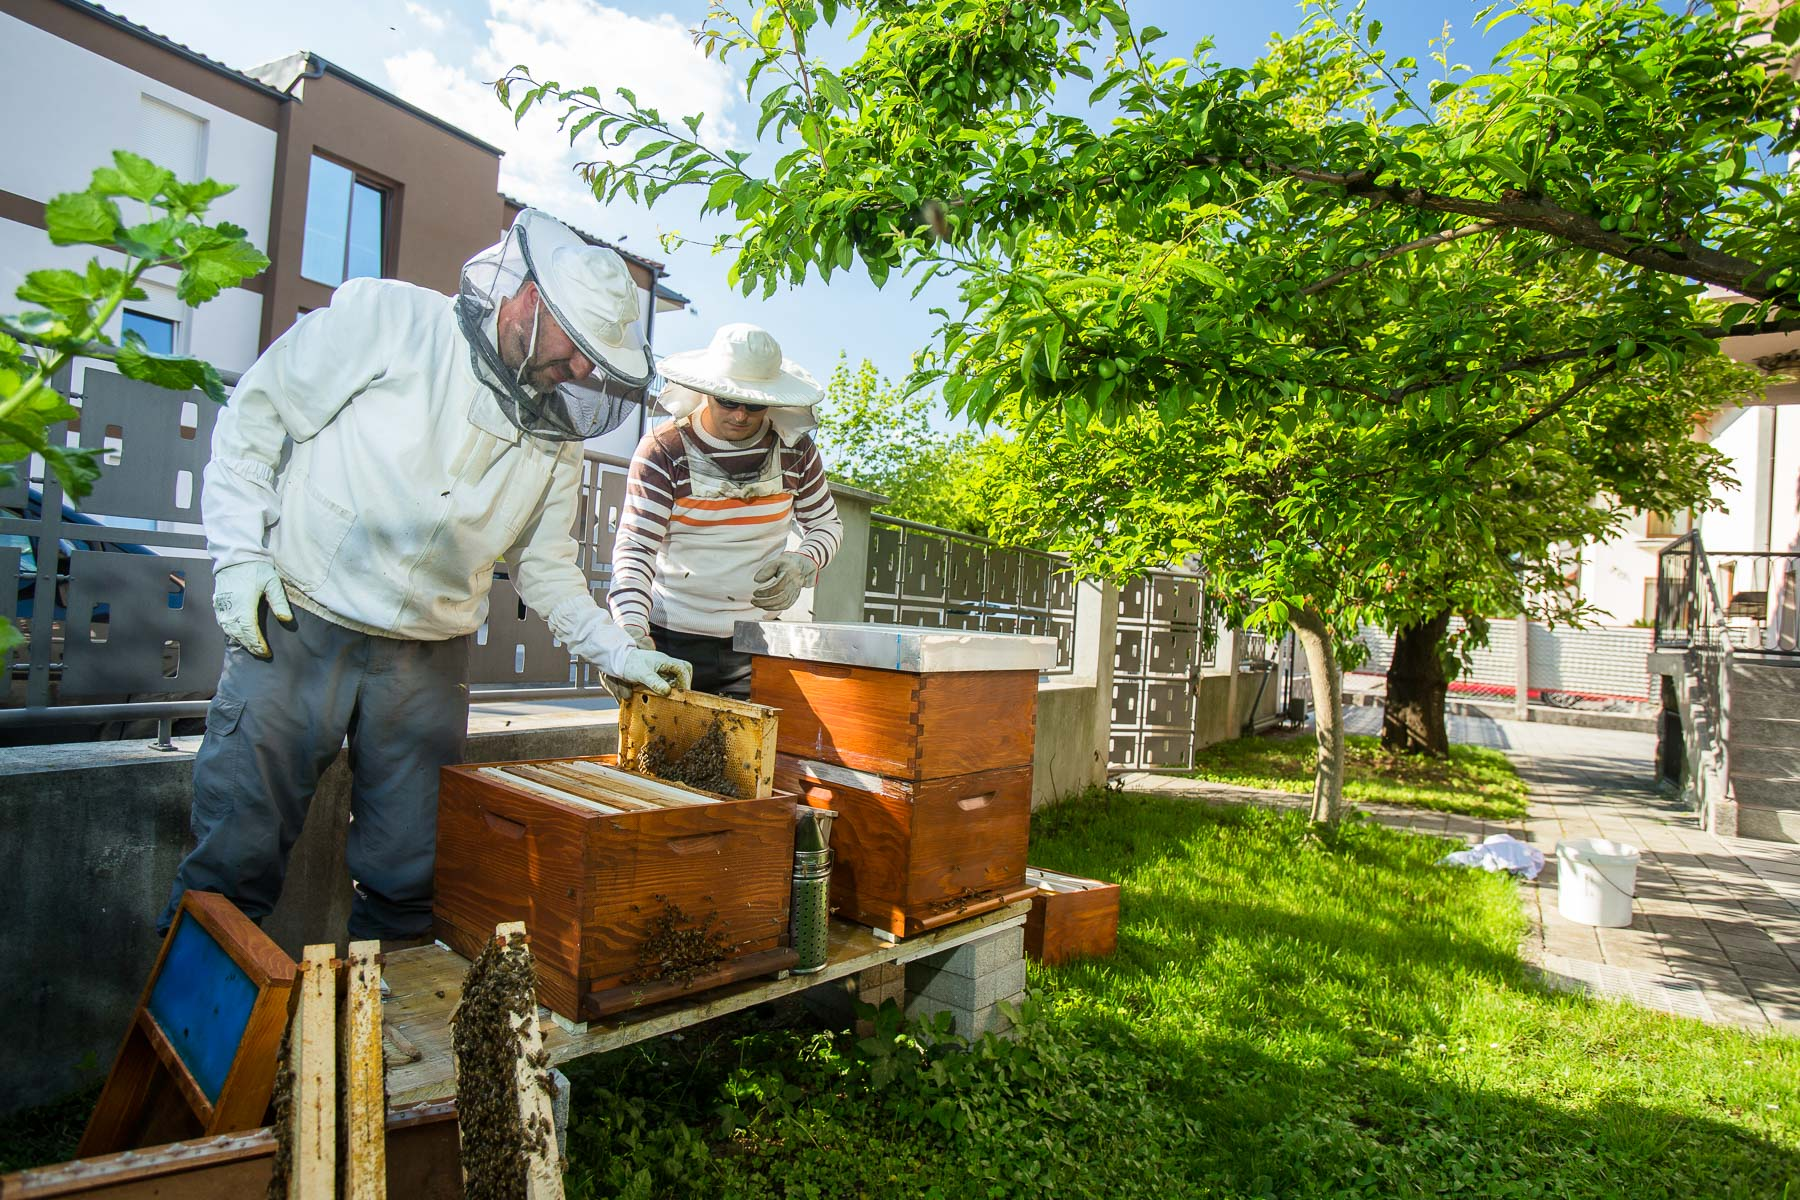 Individual or families also rent a hive from Trušnovec to put it in their garden in front of their house, but it is still rare. These hives are also maintained by Trušnovec and the honey that those bees produce belongs to the renter.